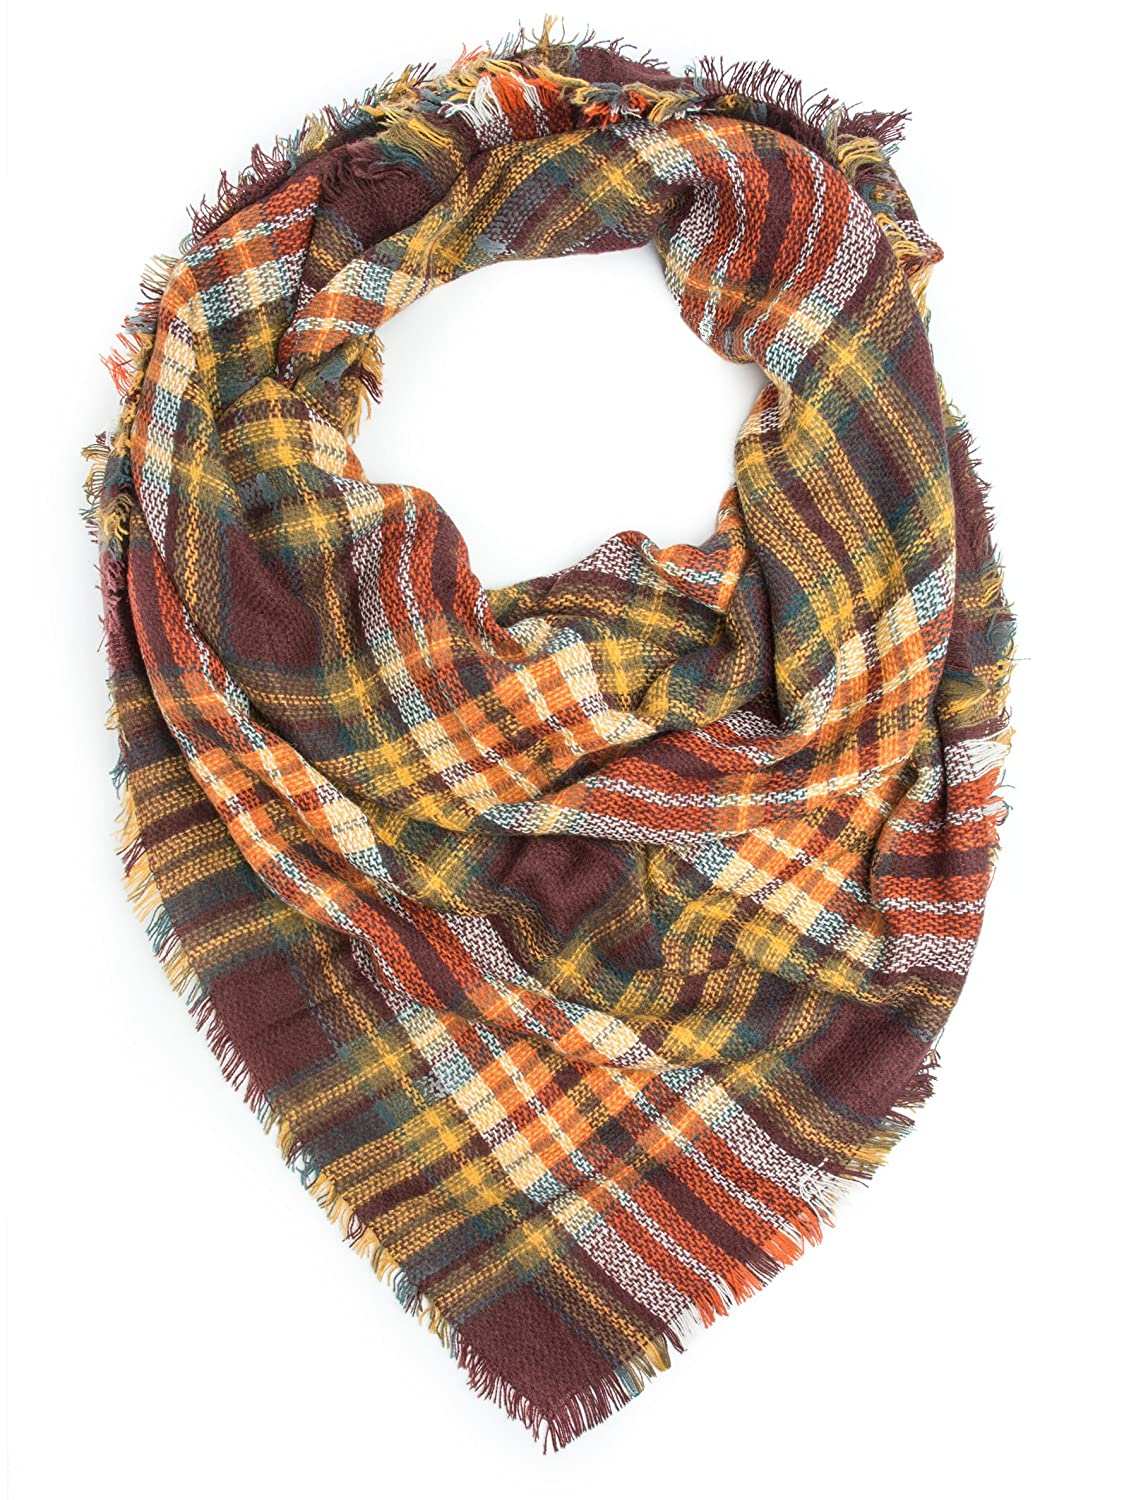 Vintage Scarves- New in the 1920s to 1960s Styles Bohomonde Moira Plaid Blanket Winter Scarf or Shawl $16.95 AT vintagedancer.com